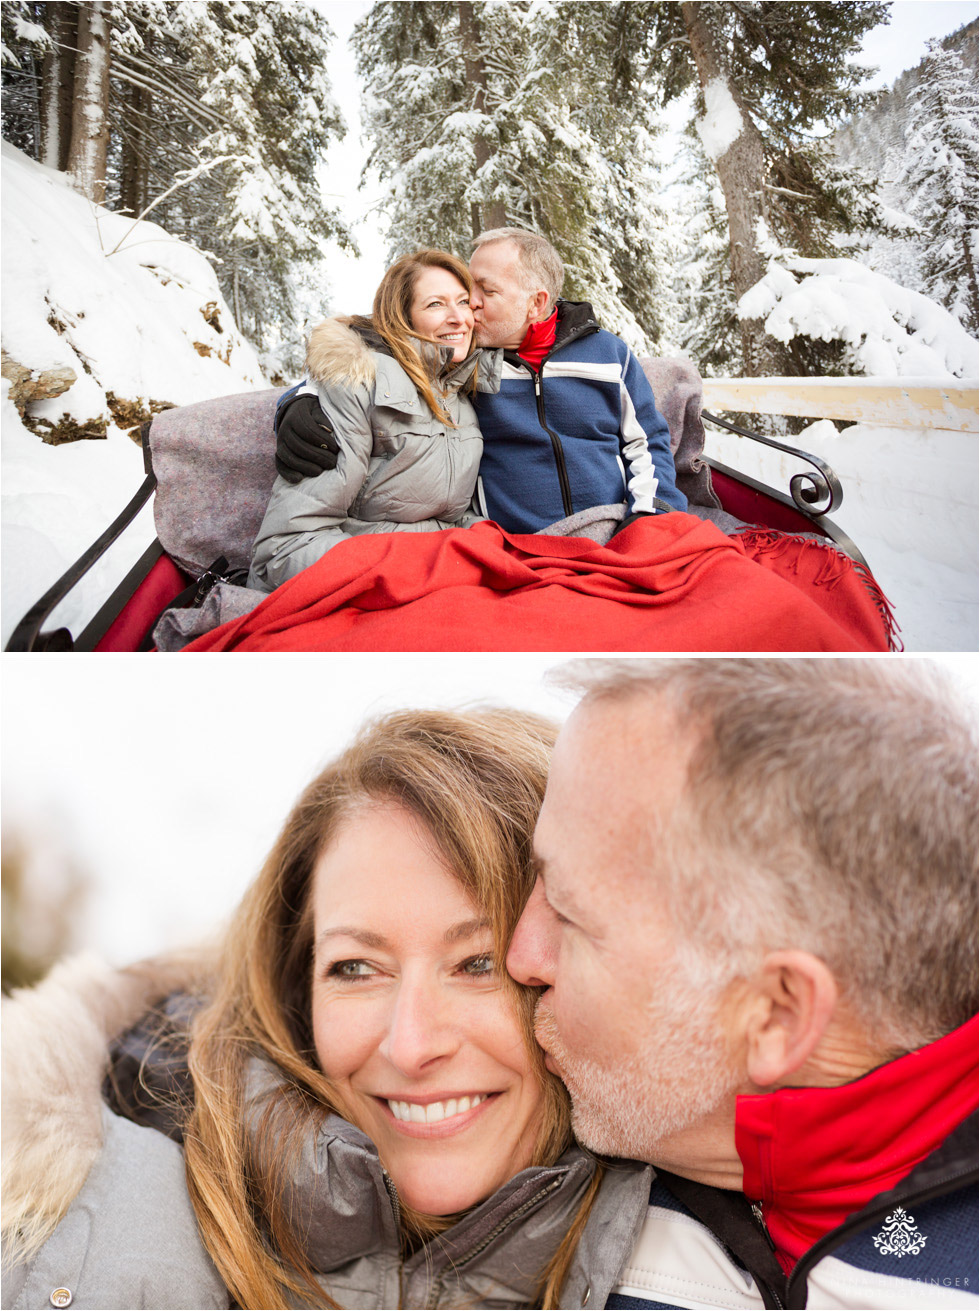 cute couple kissing on a sleigh ride in st. anton am arlberg - Blog of Nina Hintringer Photography - Wedding Photography, Wedding Reportage and Destination Weddings